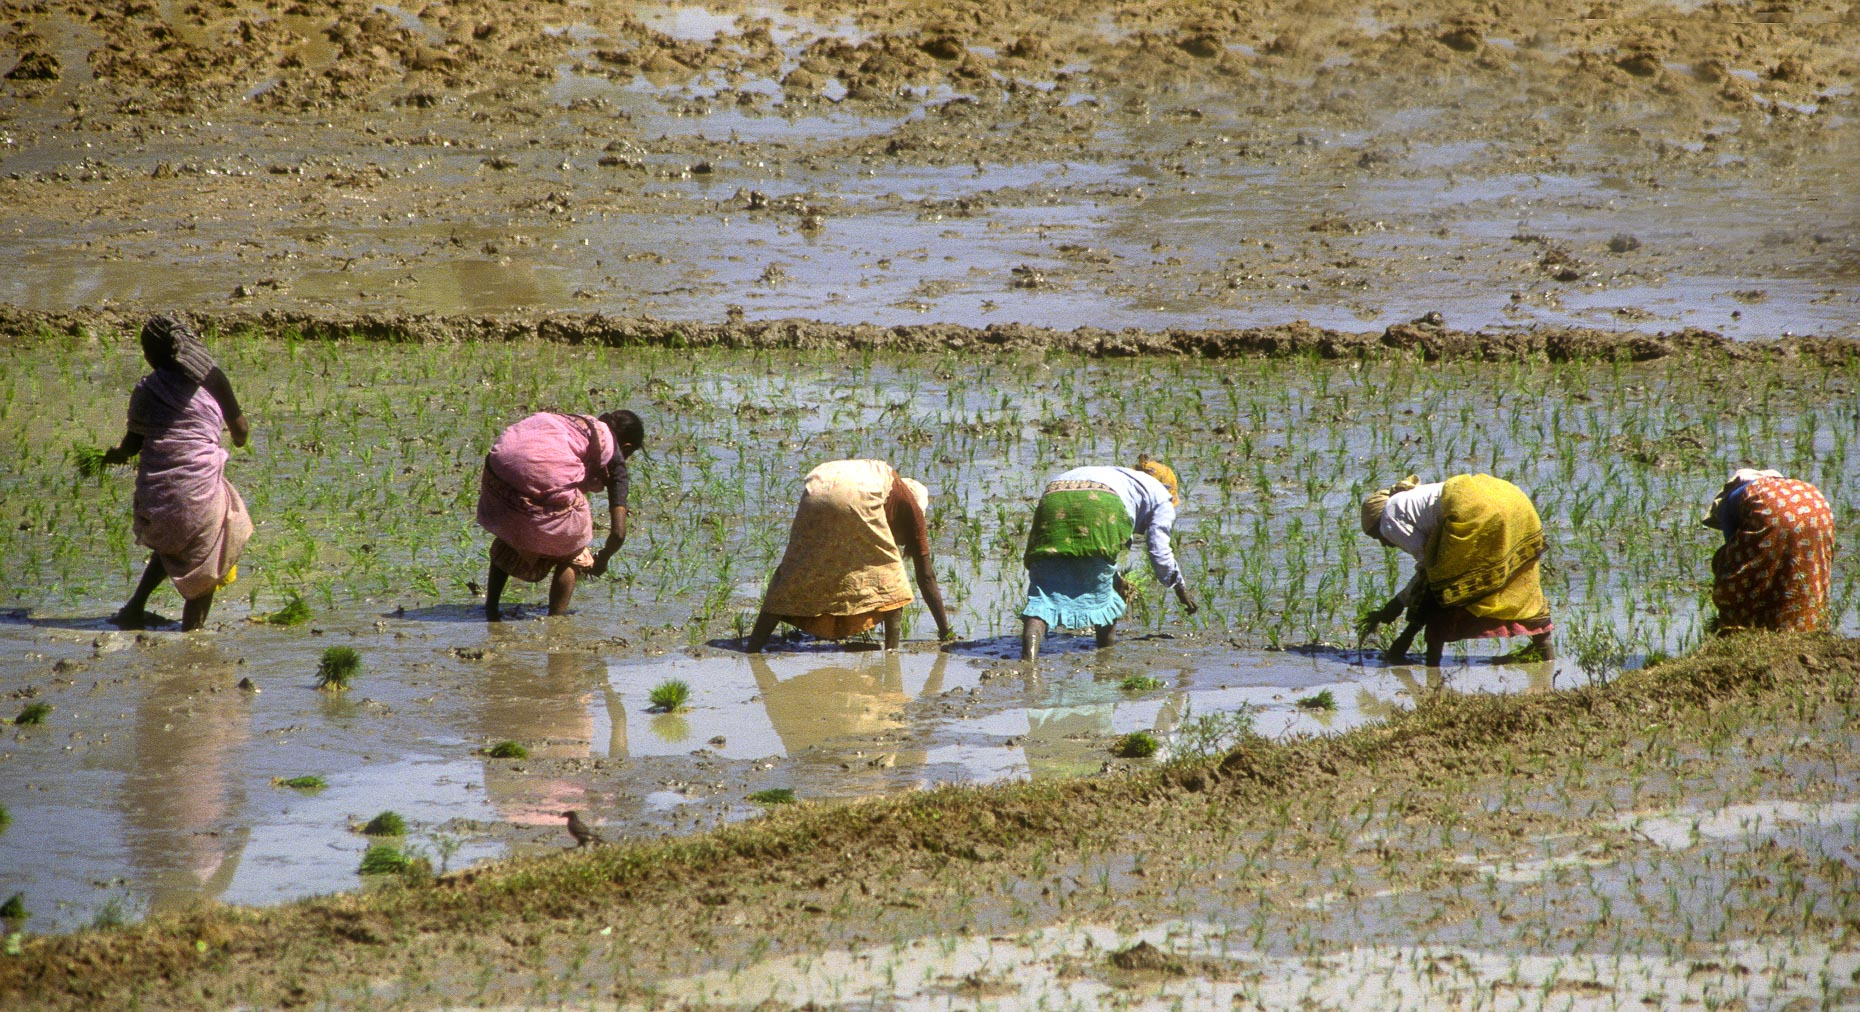 Rice Workers-Karnataka, India